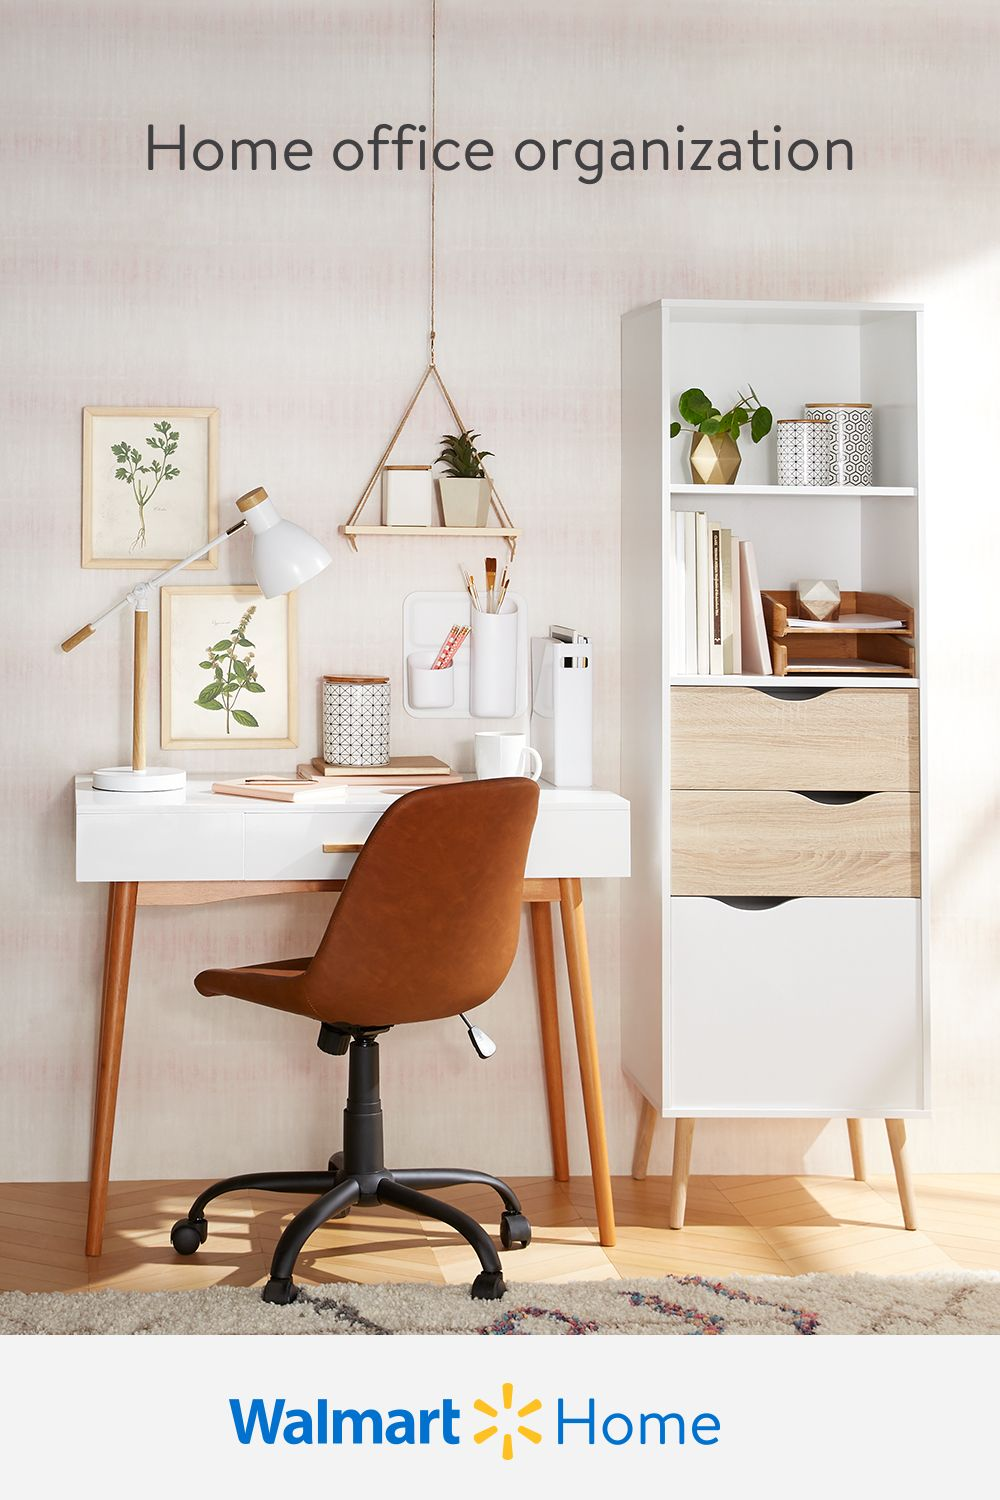 Get ready for a productive new year with easy home office organization essentials. Shop Walmart for affordable furniture, desk accessories, stylish storage, & more for your work-at-home zone.